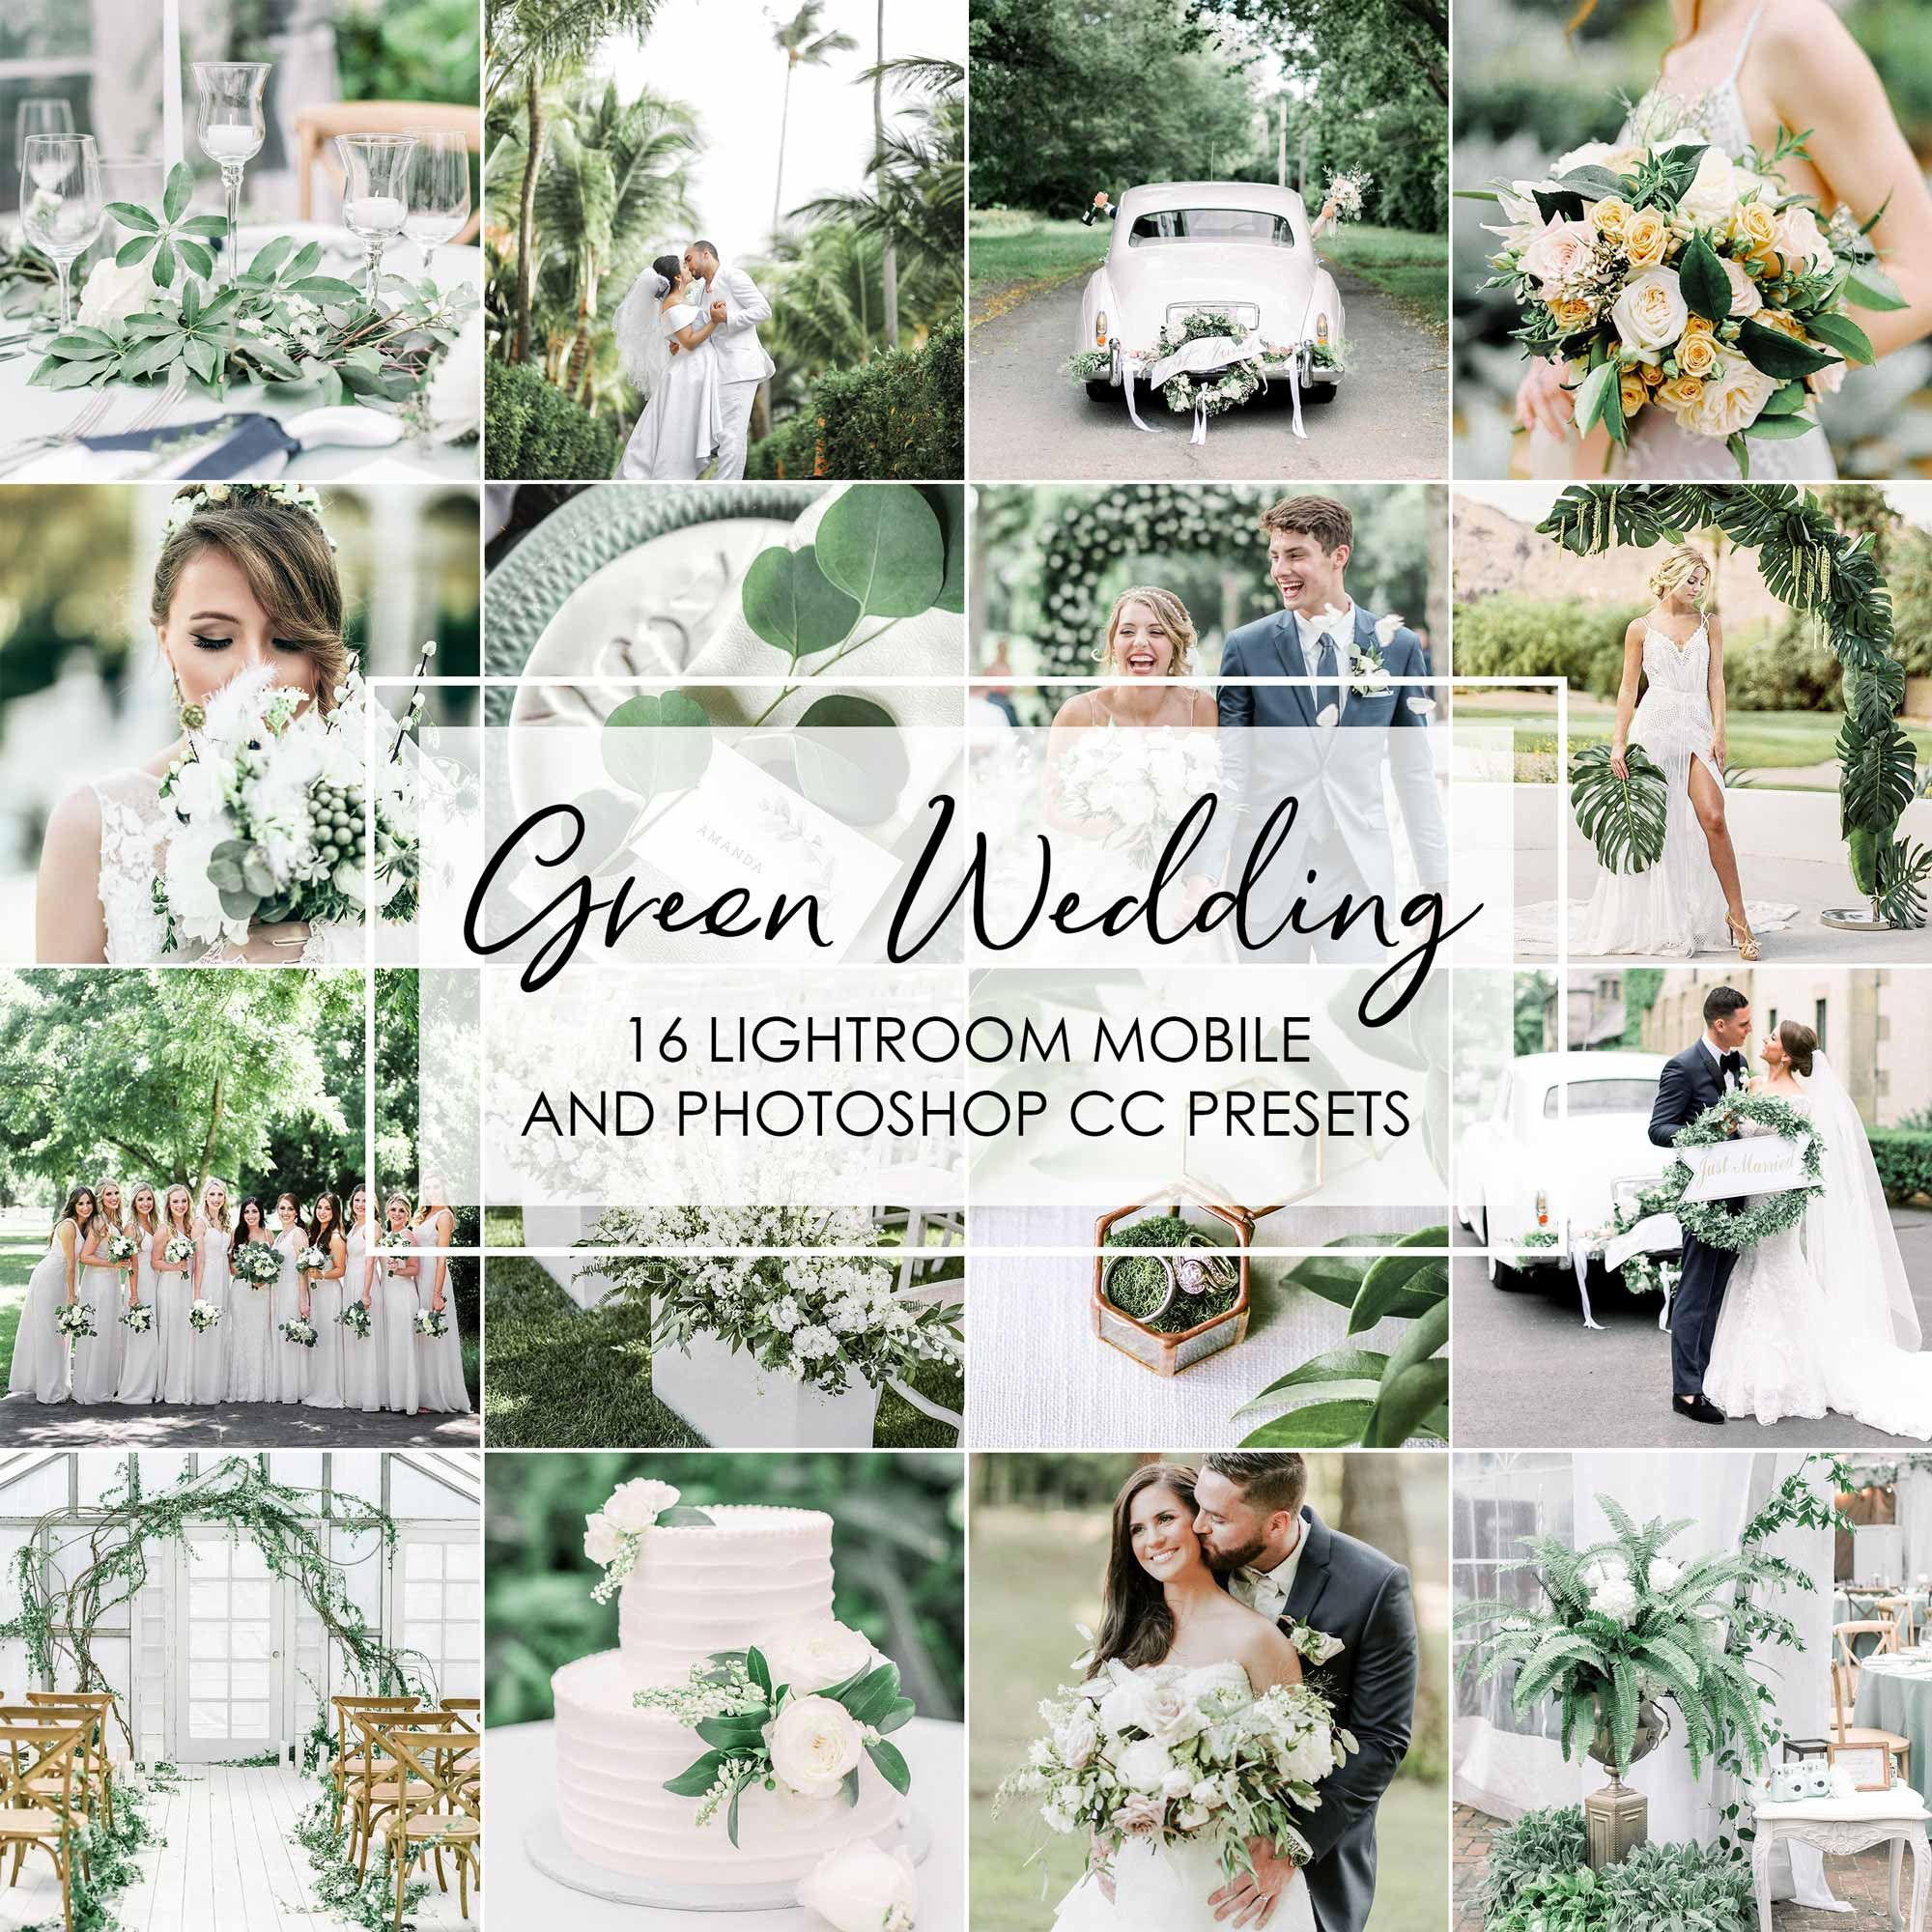 Lightroom Presets 16 Presets Green Wedding Wedding Etsy In 2020 Wedding Presets Portrait Presets Photoshop Presets Free